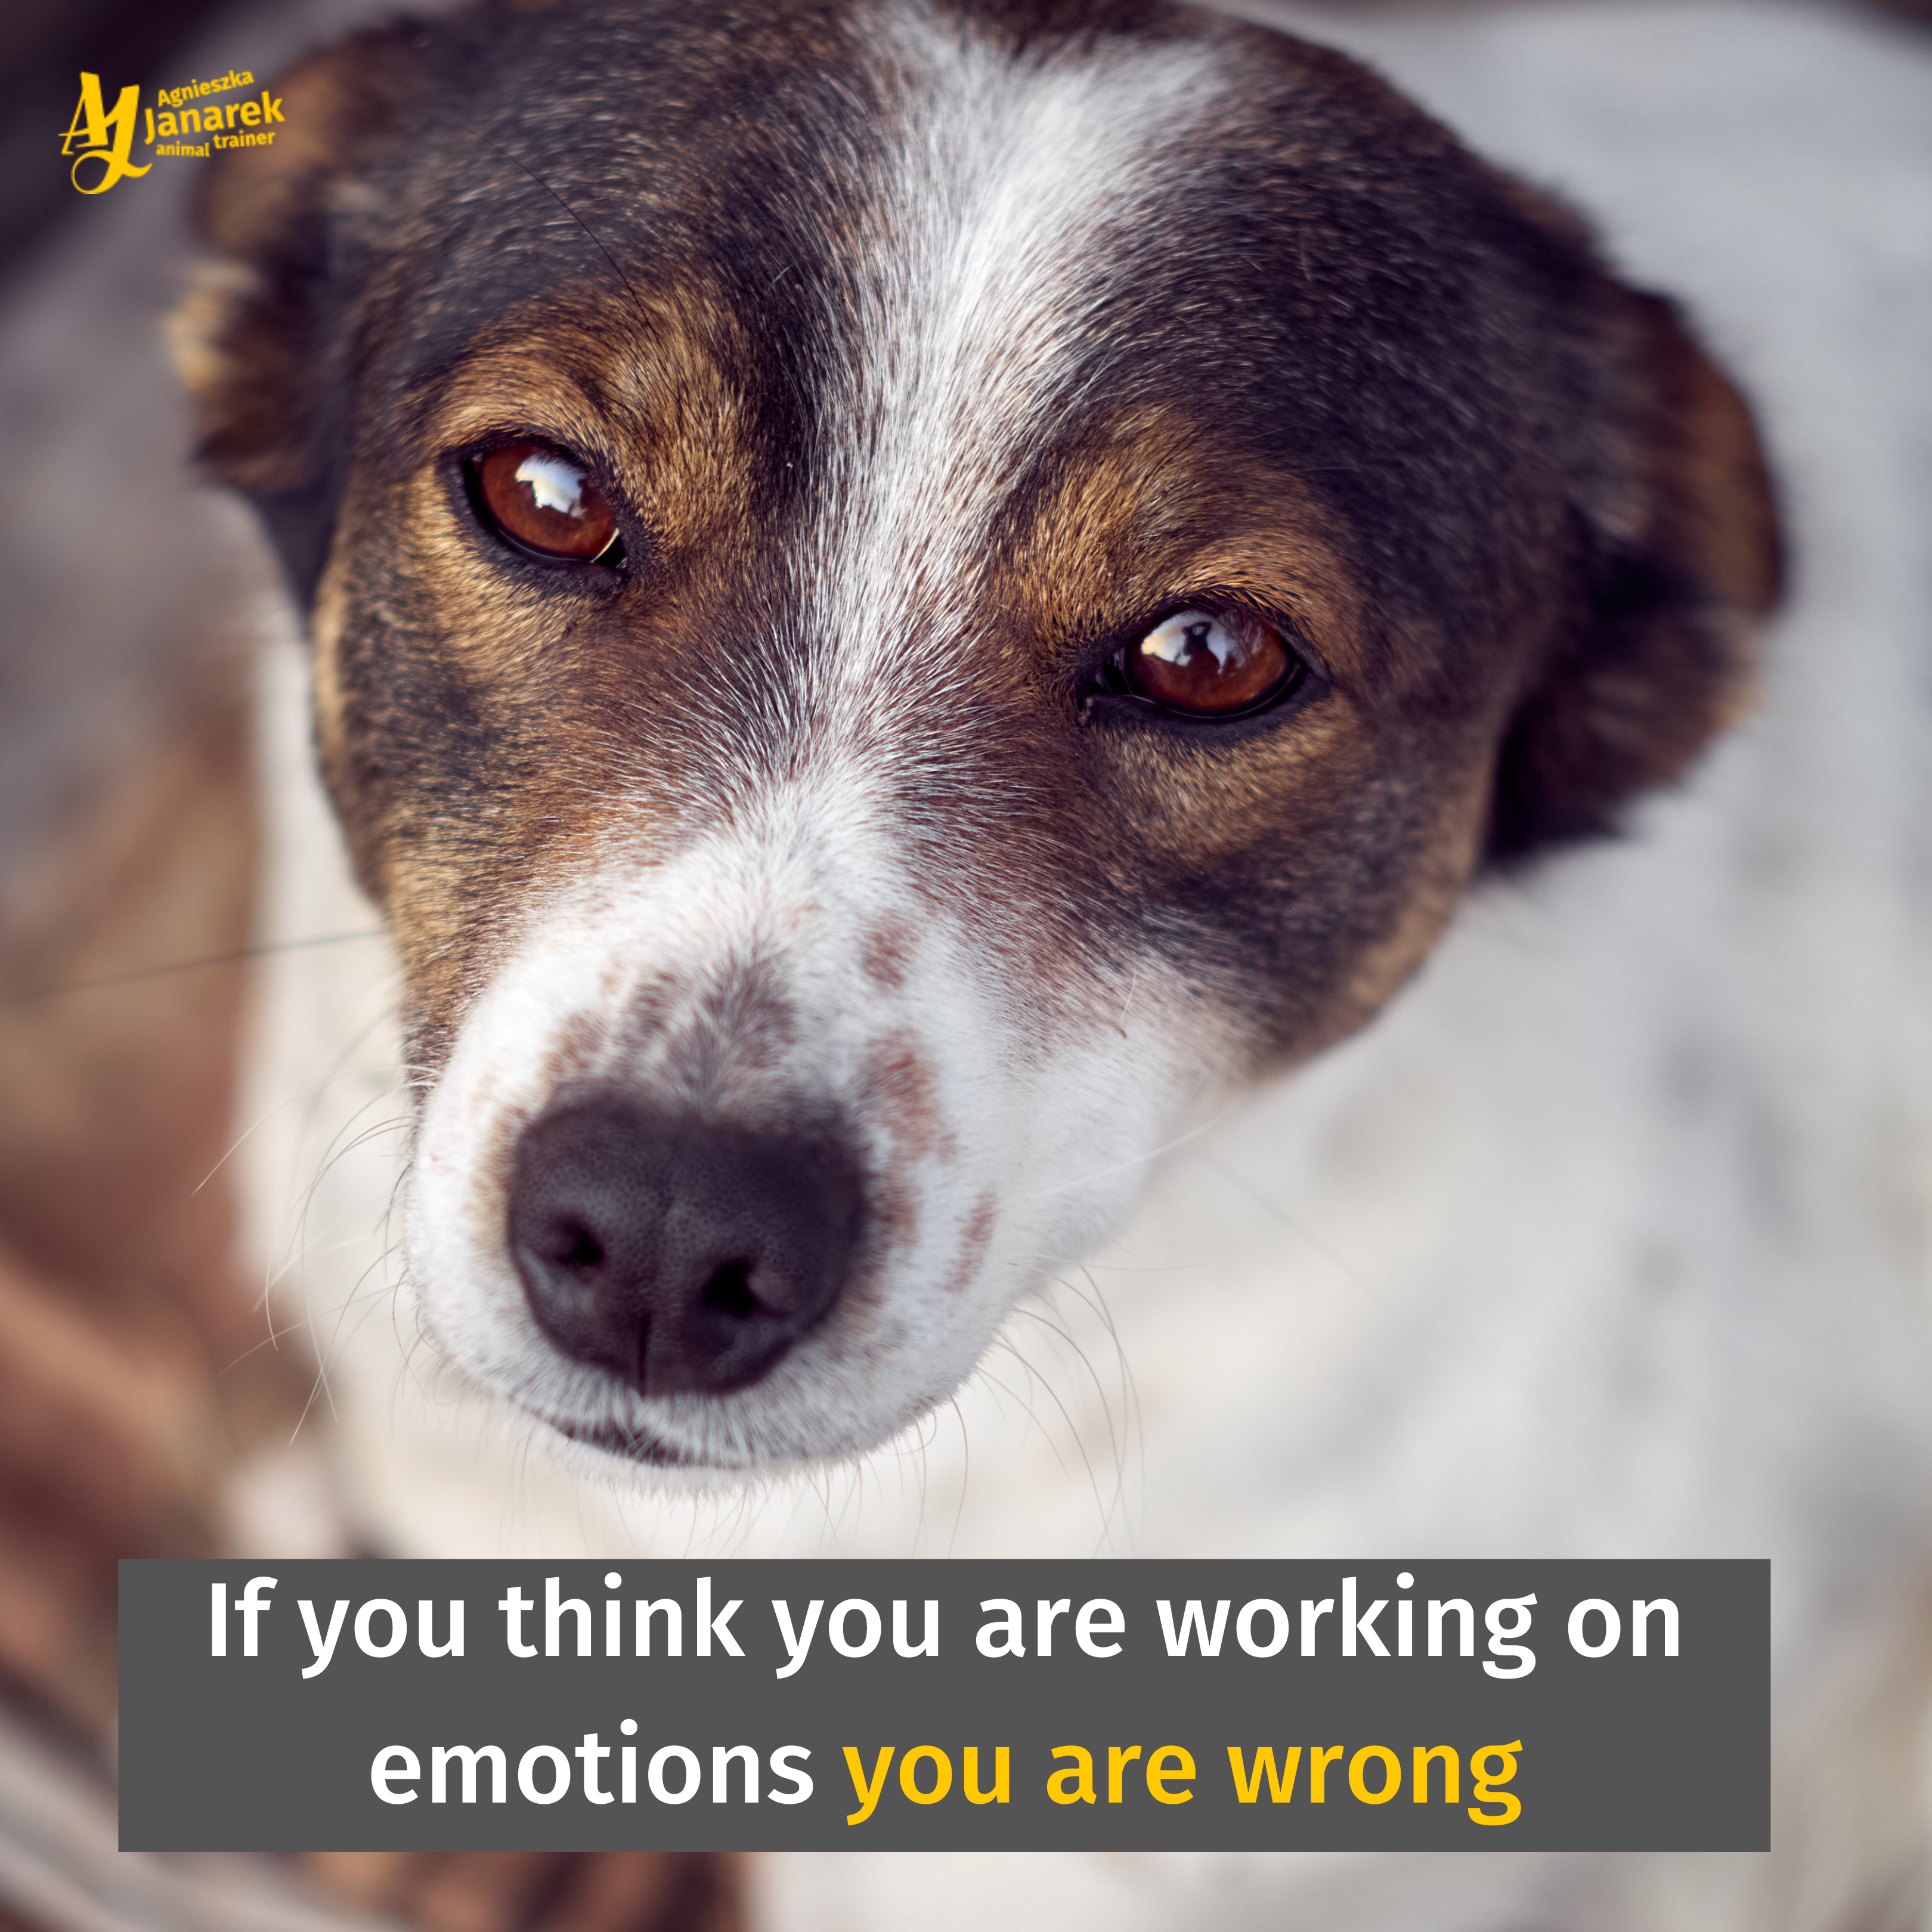 If You Think You Are Working On Emotions You Are Wrong